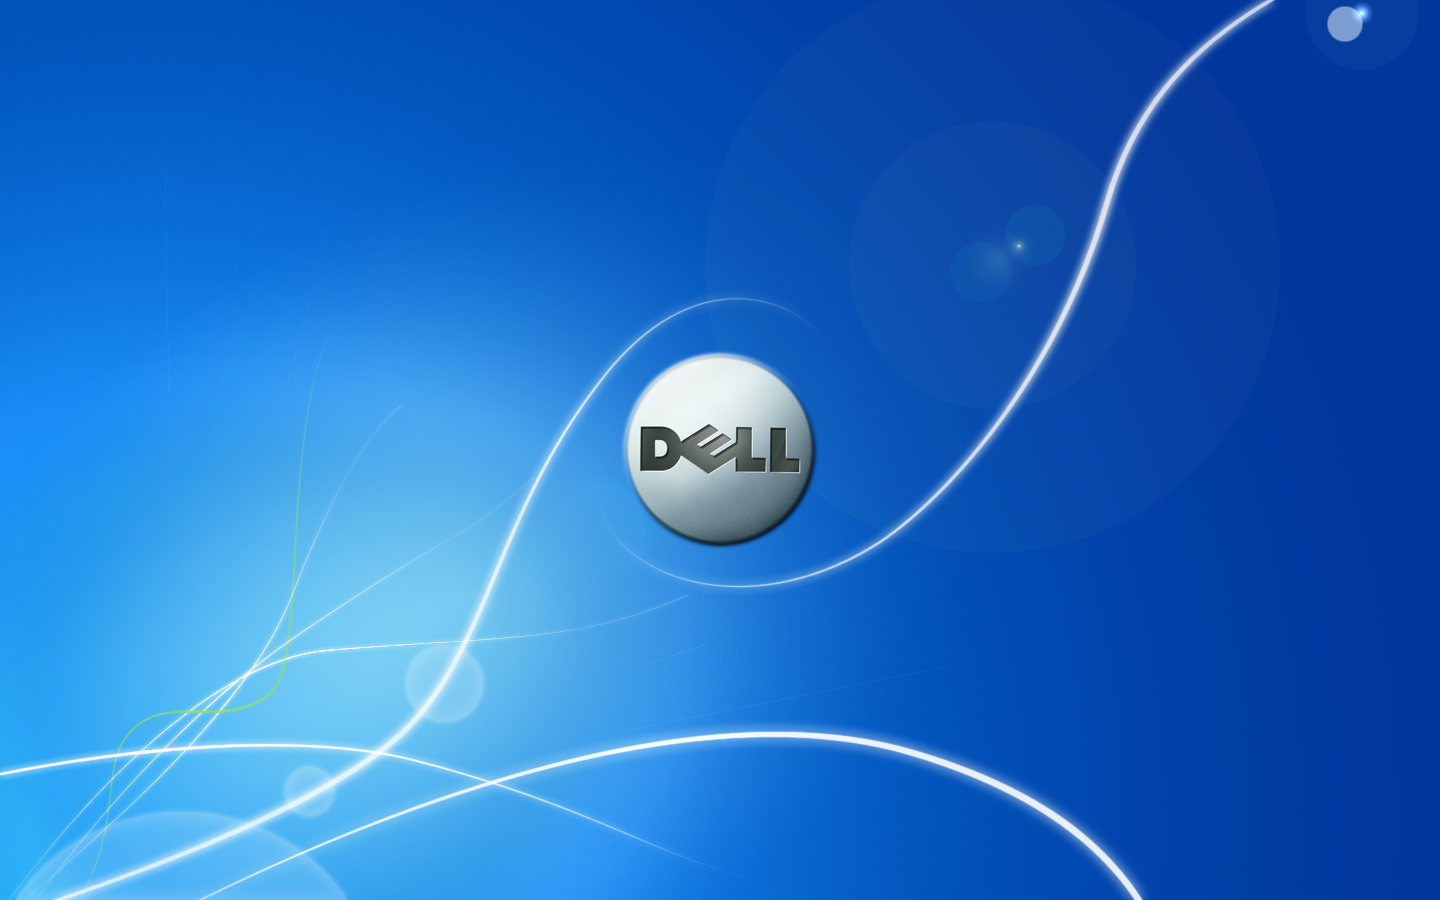 Dell-wallpaper-31.jpg